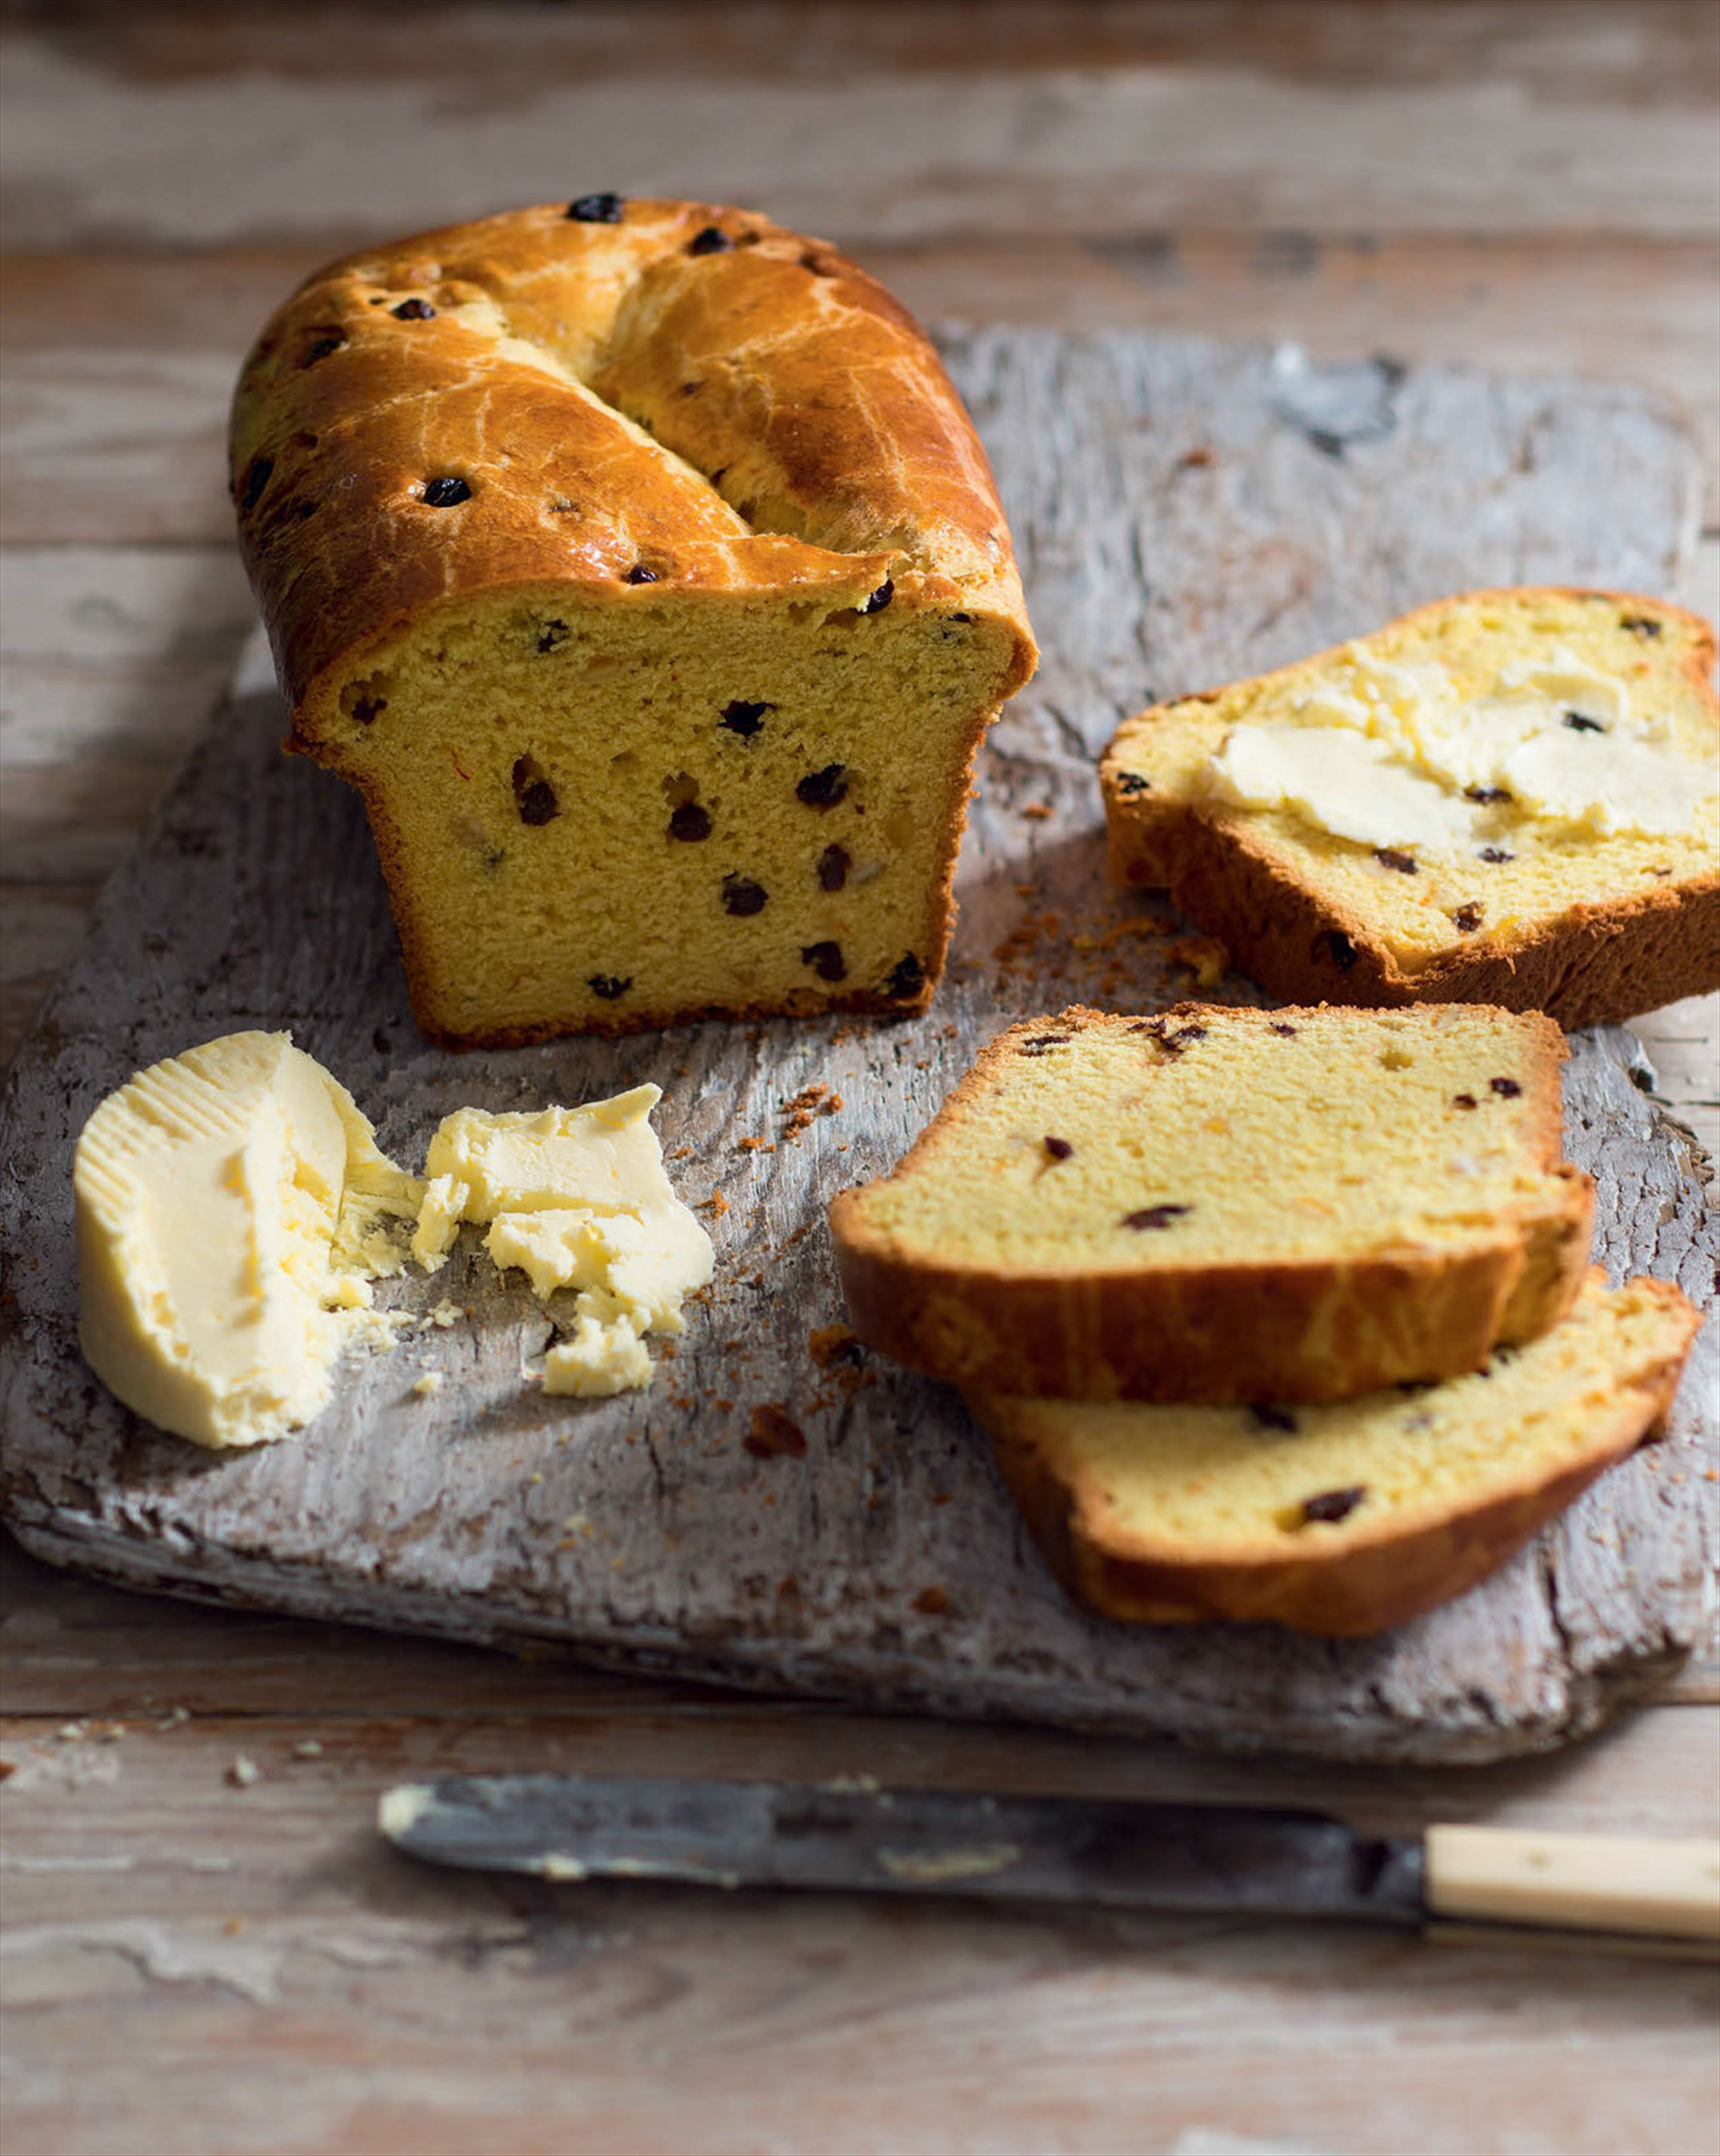 Saffron fruit loaf